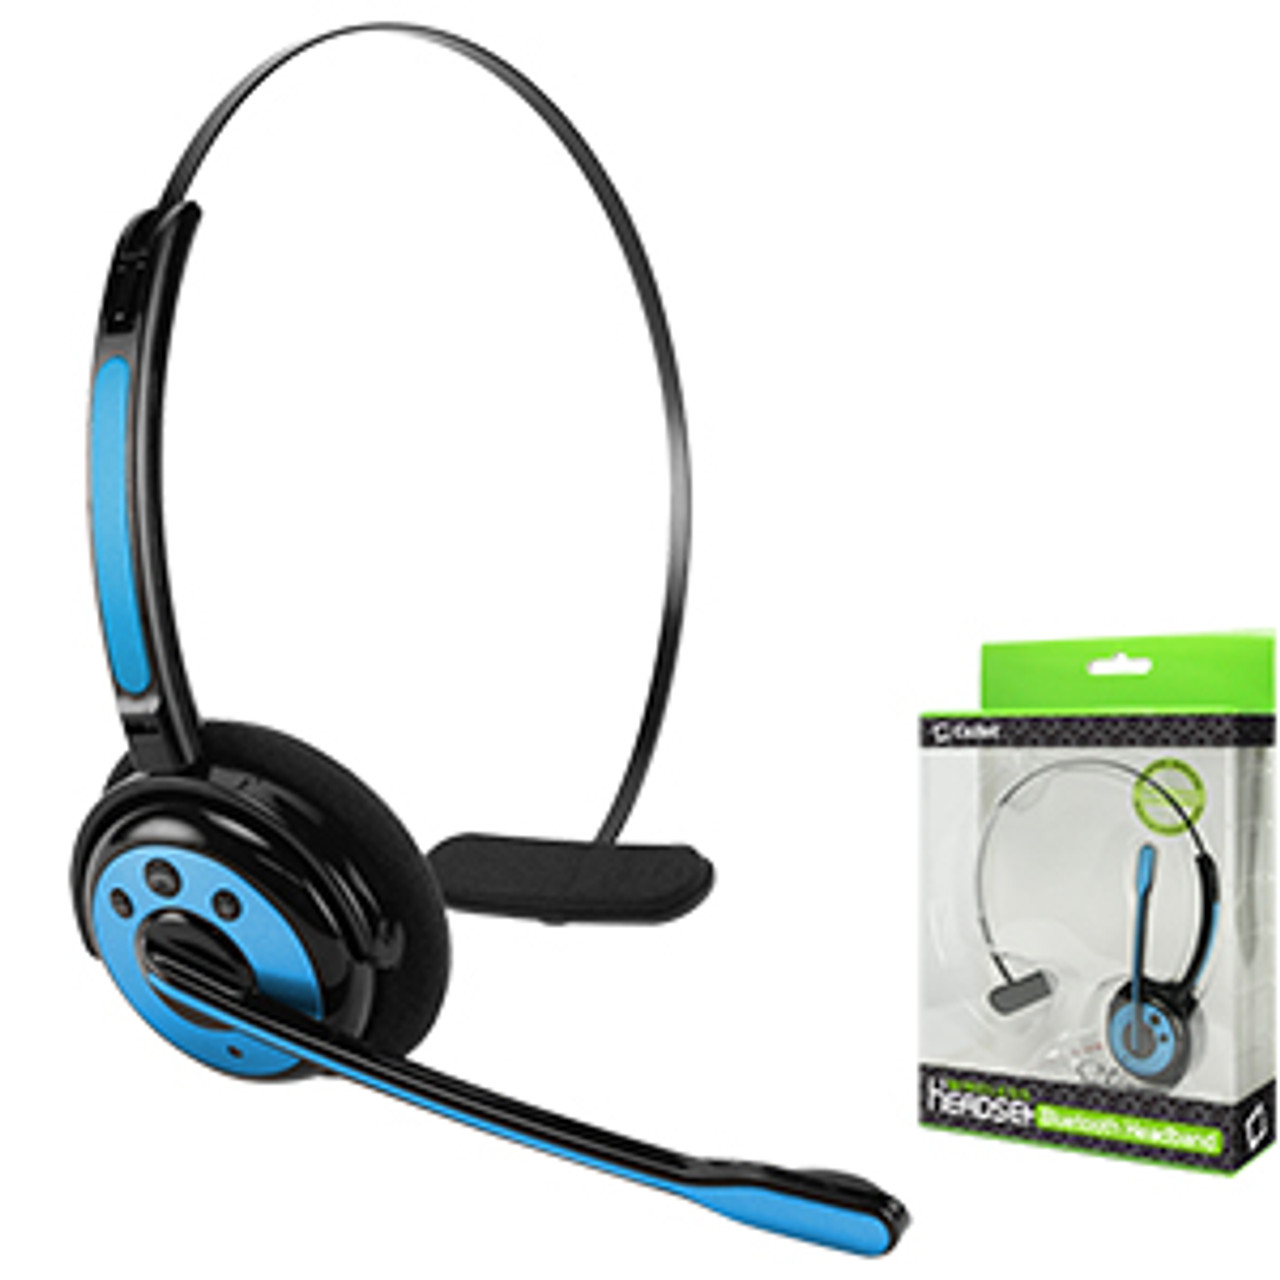 Bluetooth Cellet Wireless Blue Headset With Boom Microphone For Samsung Galaxy Note 2 3 4 5 Galaxy S4 S5 S6 S7 Apple Iphone 5 5s 5c 6 6s 7 Fit Most Bluetooth Compatible Cellphones